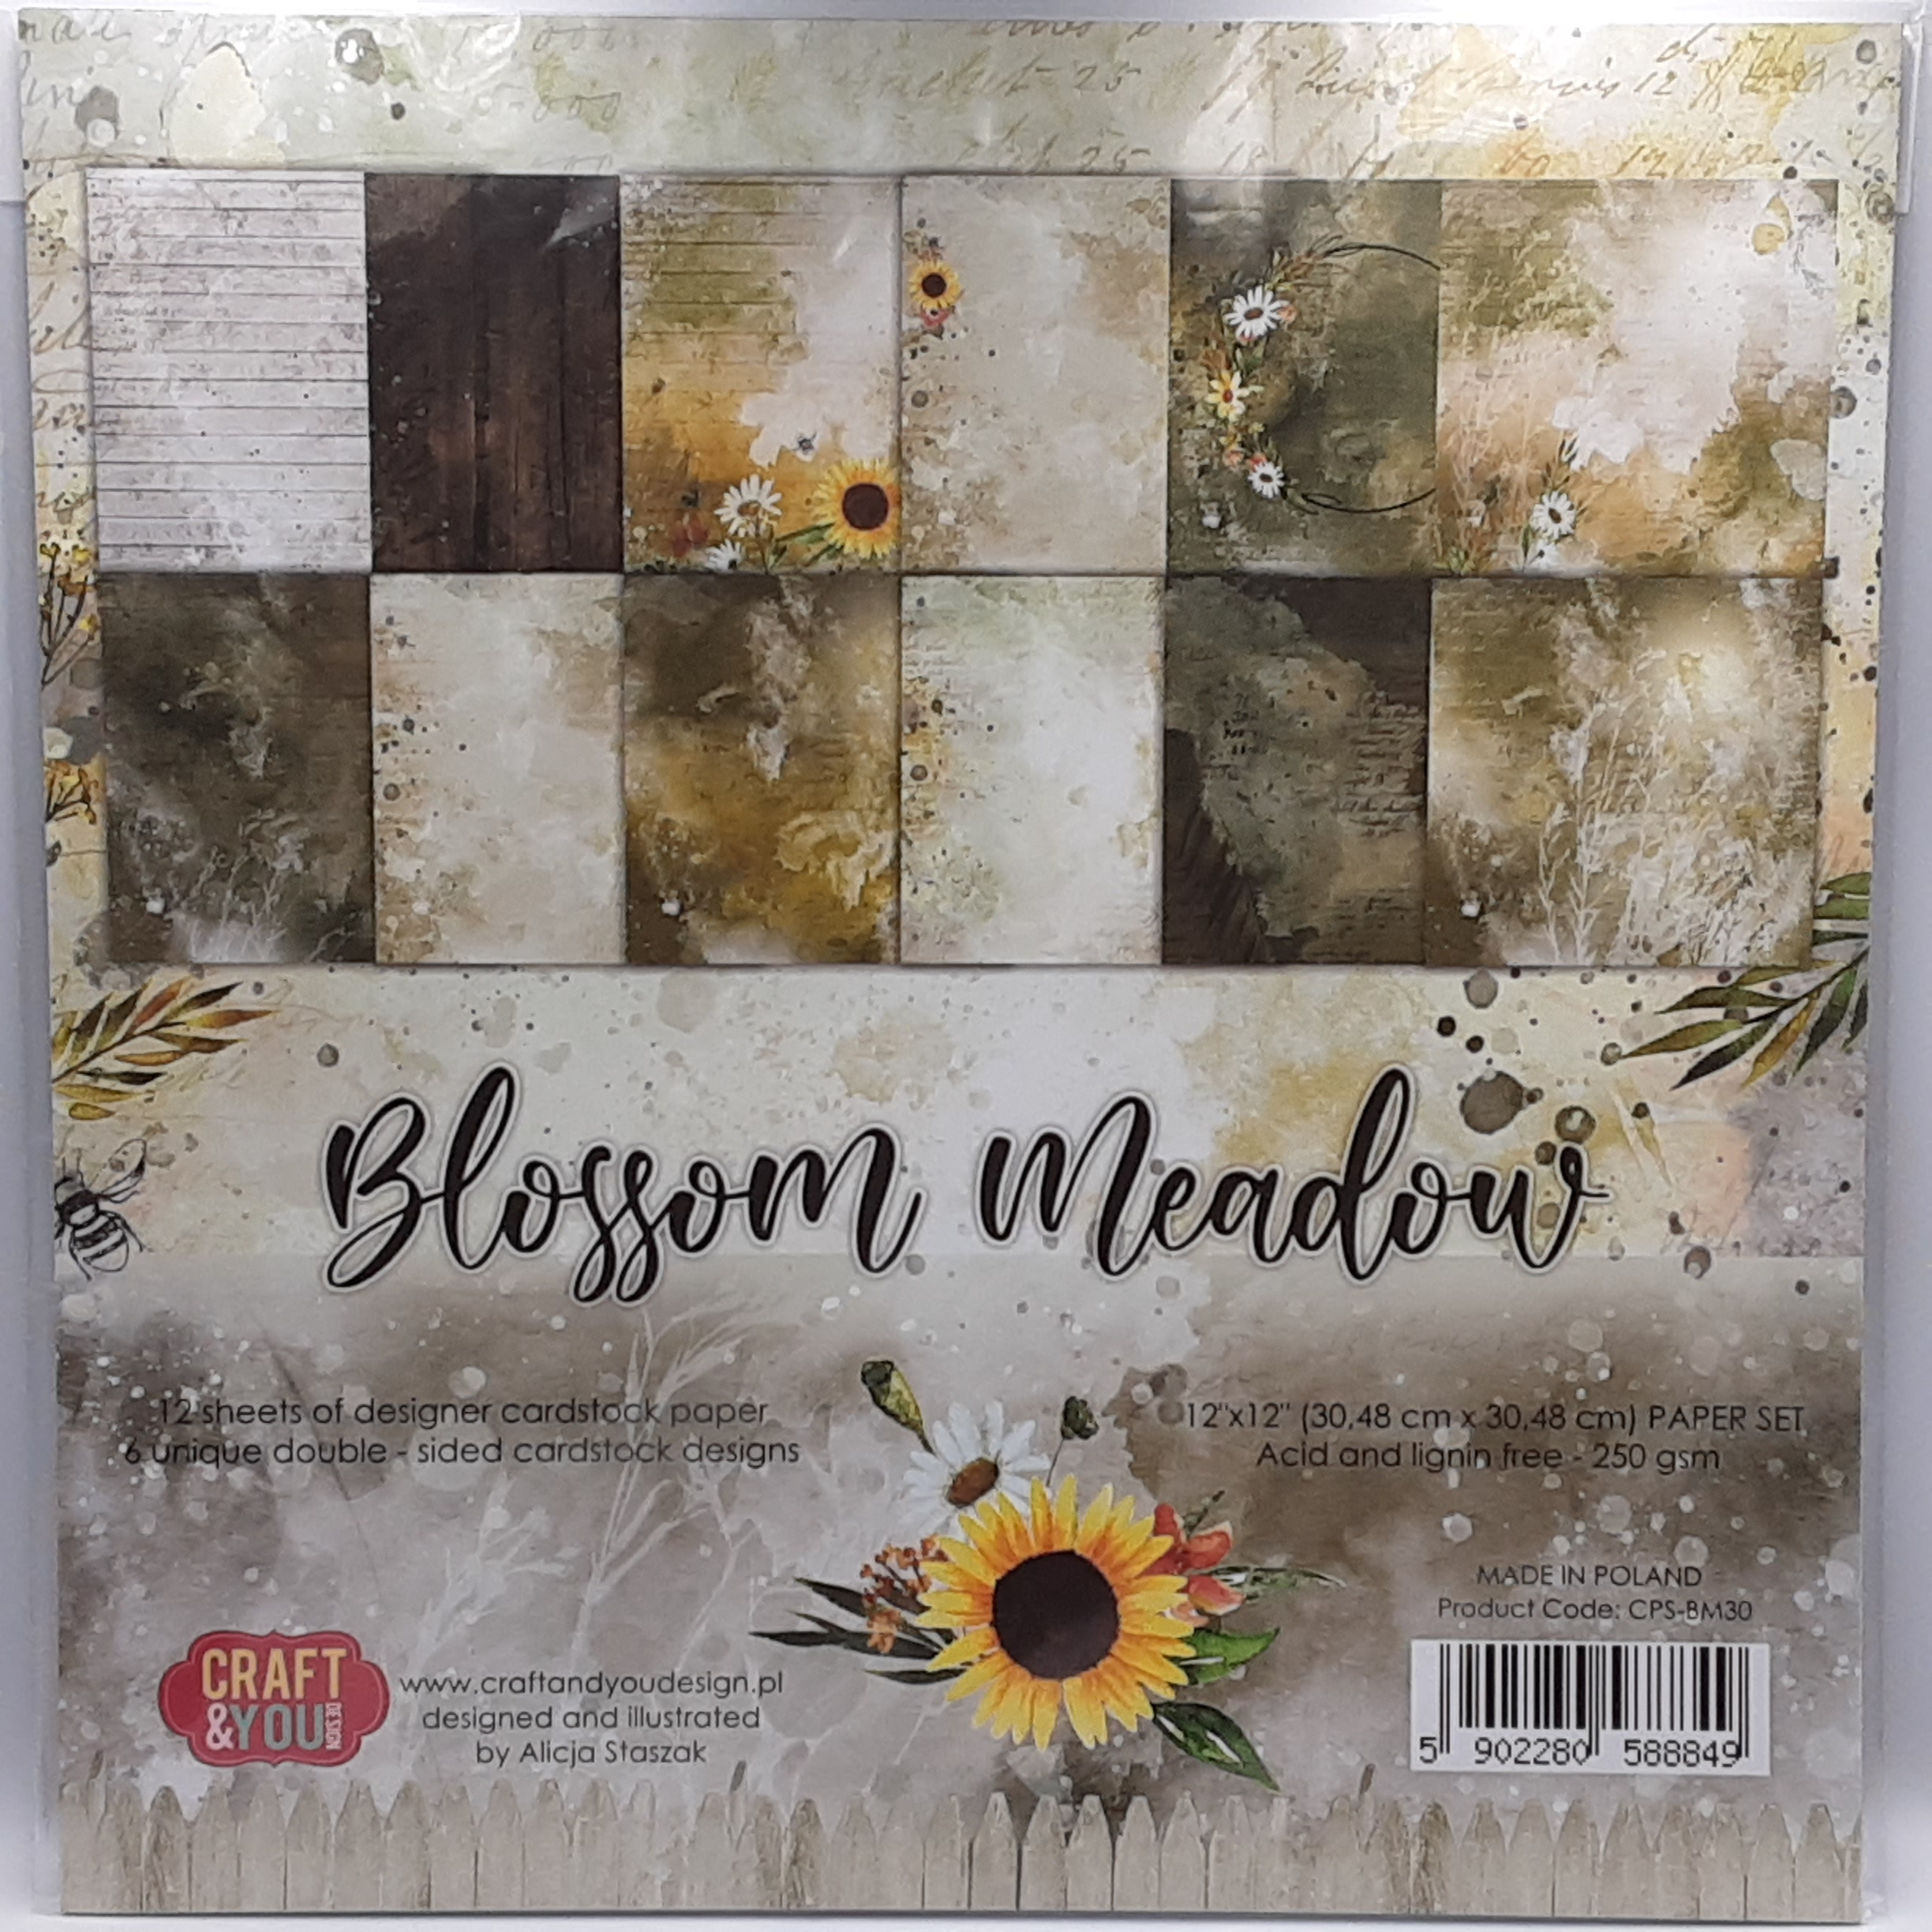 Blossom meadow paperpad 12